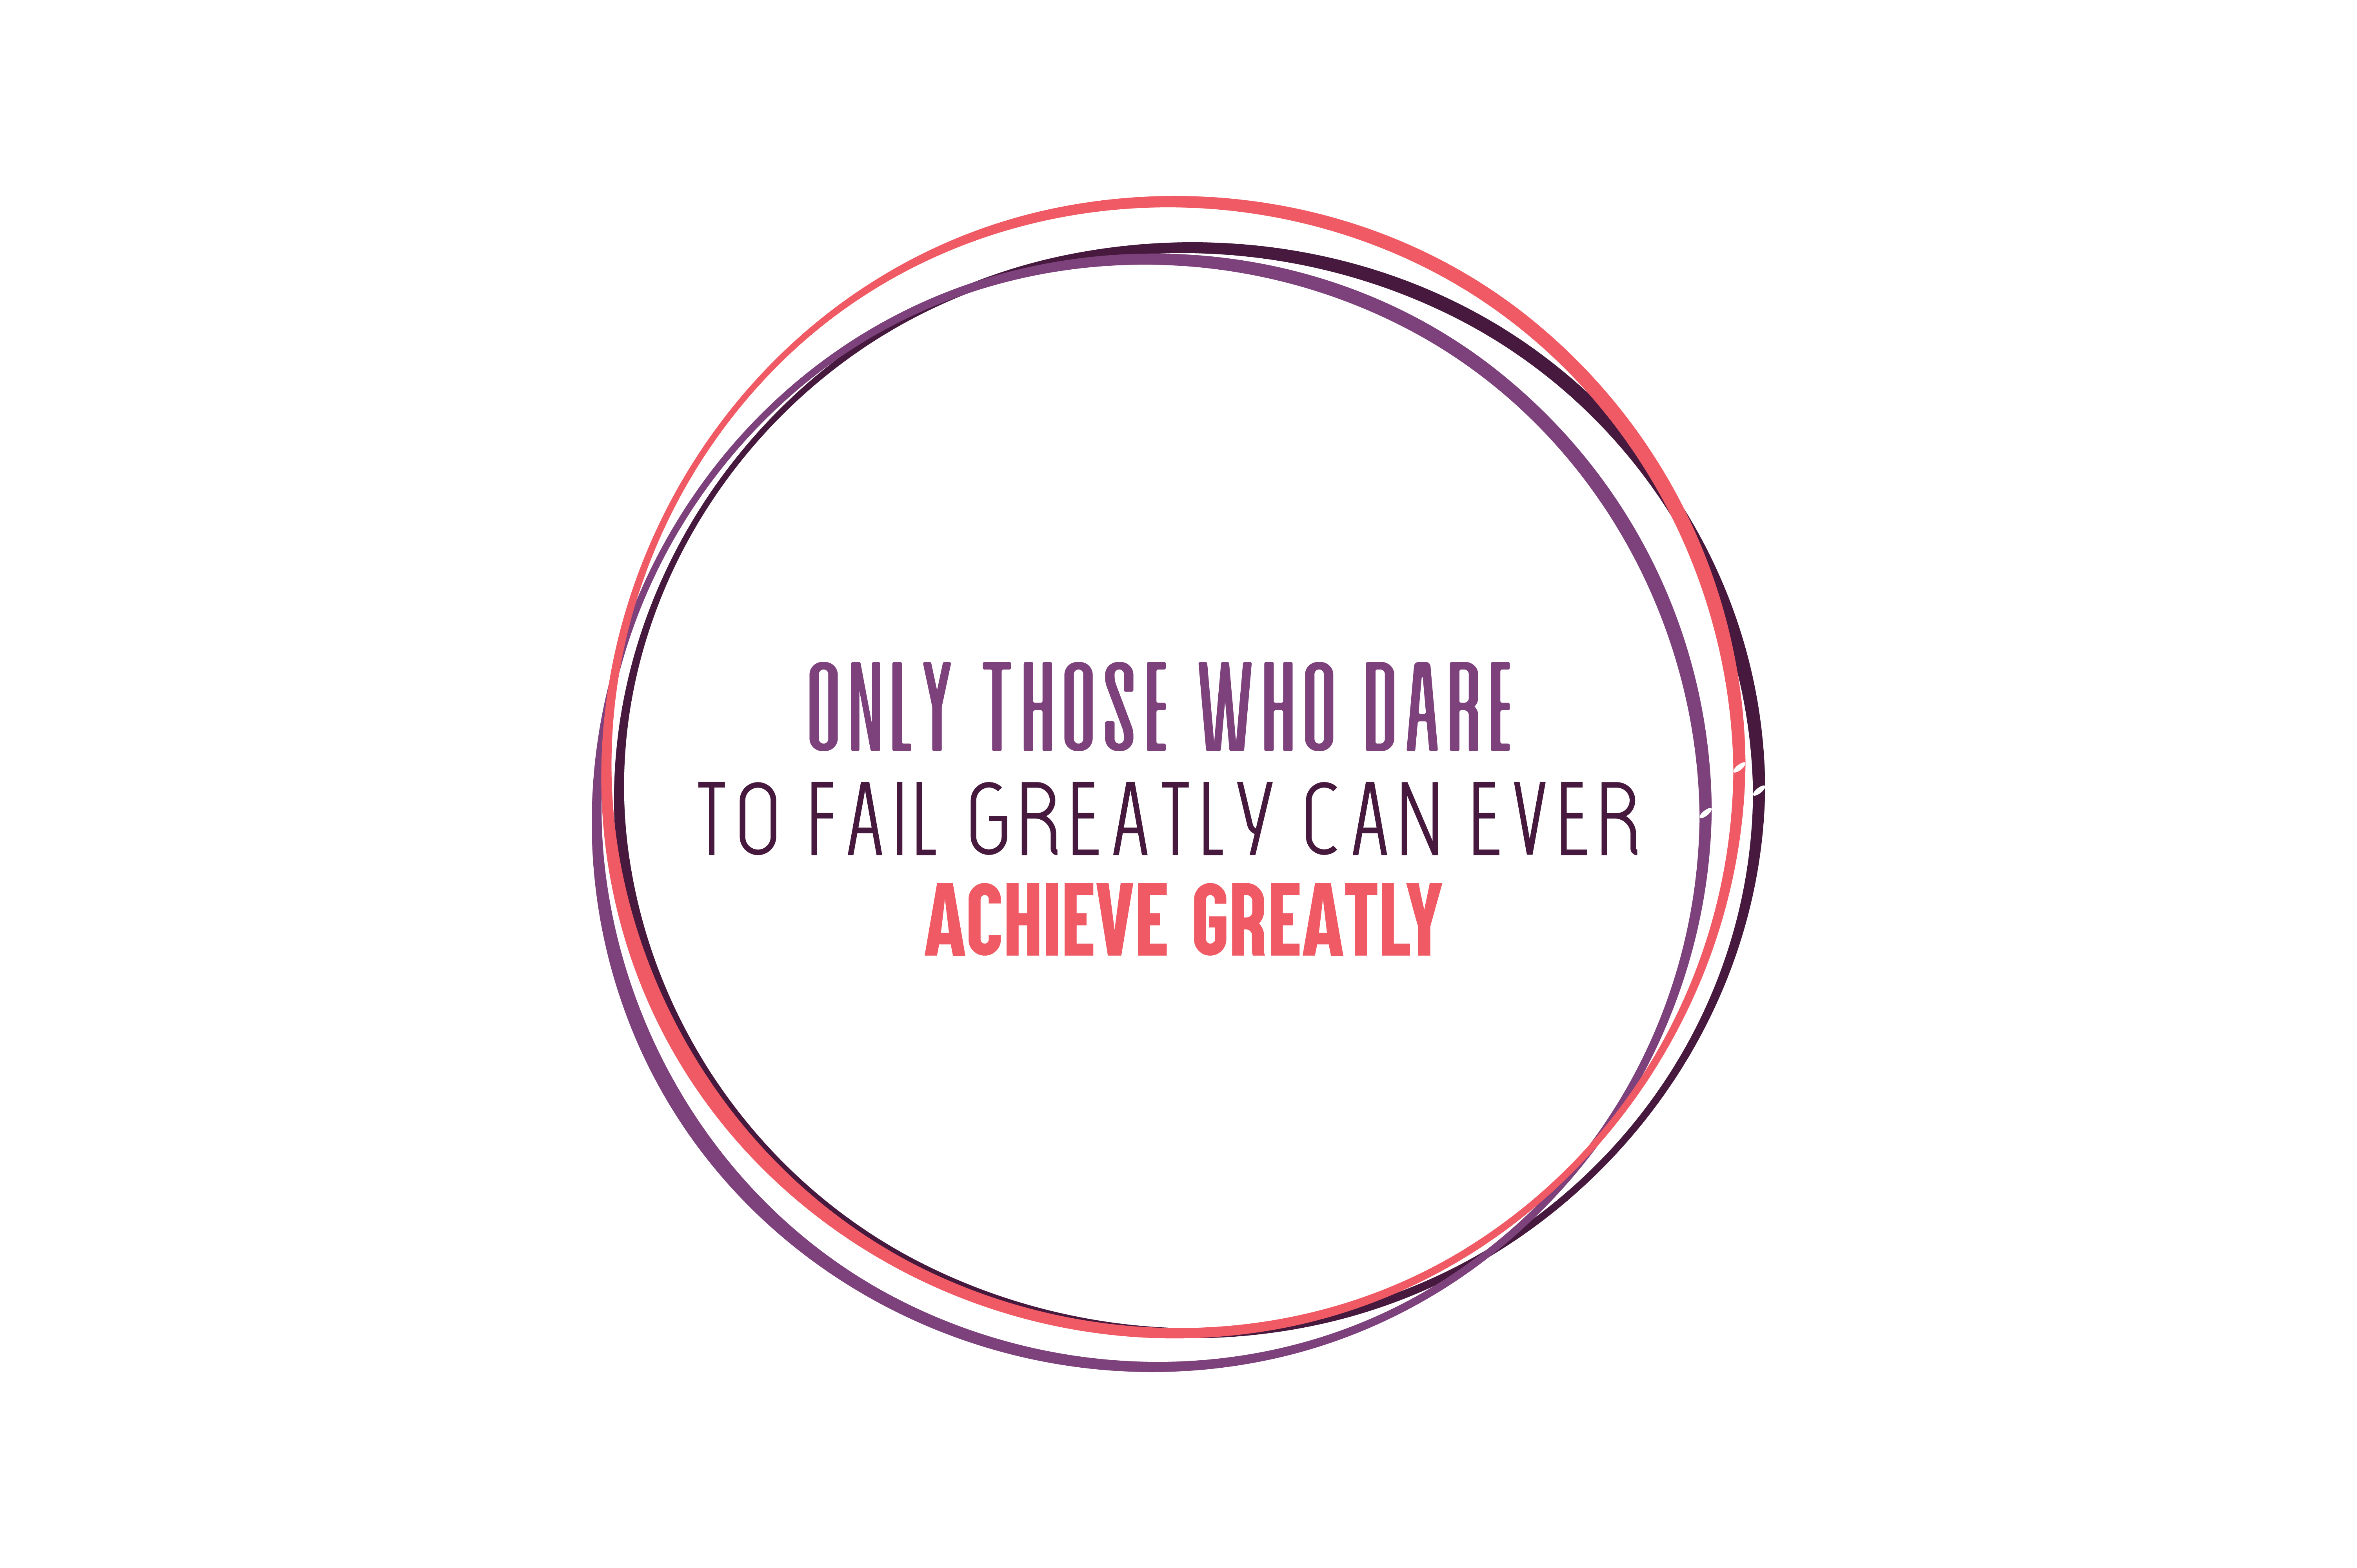 Download Free Only Those Who Dare To Fail Greatly Can Ever Achieve Greatly Quote for Cricut Explore, Silhouette and other cutting machines.